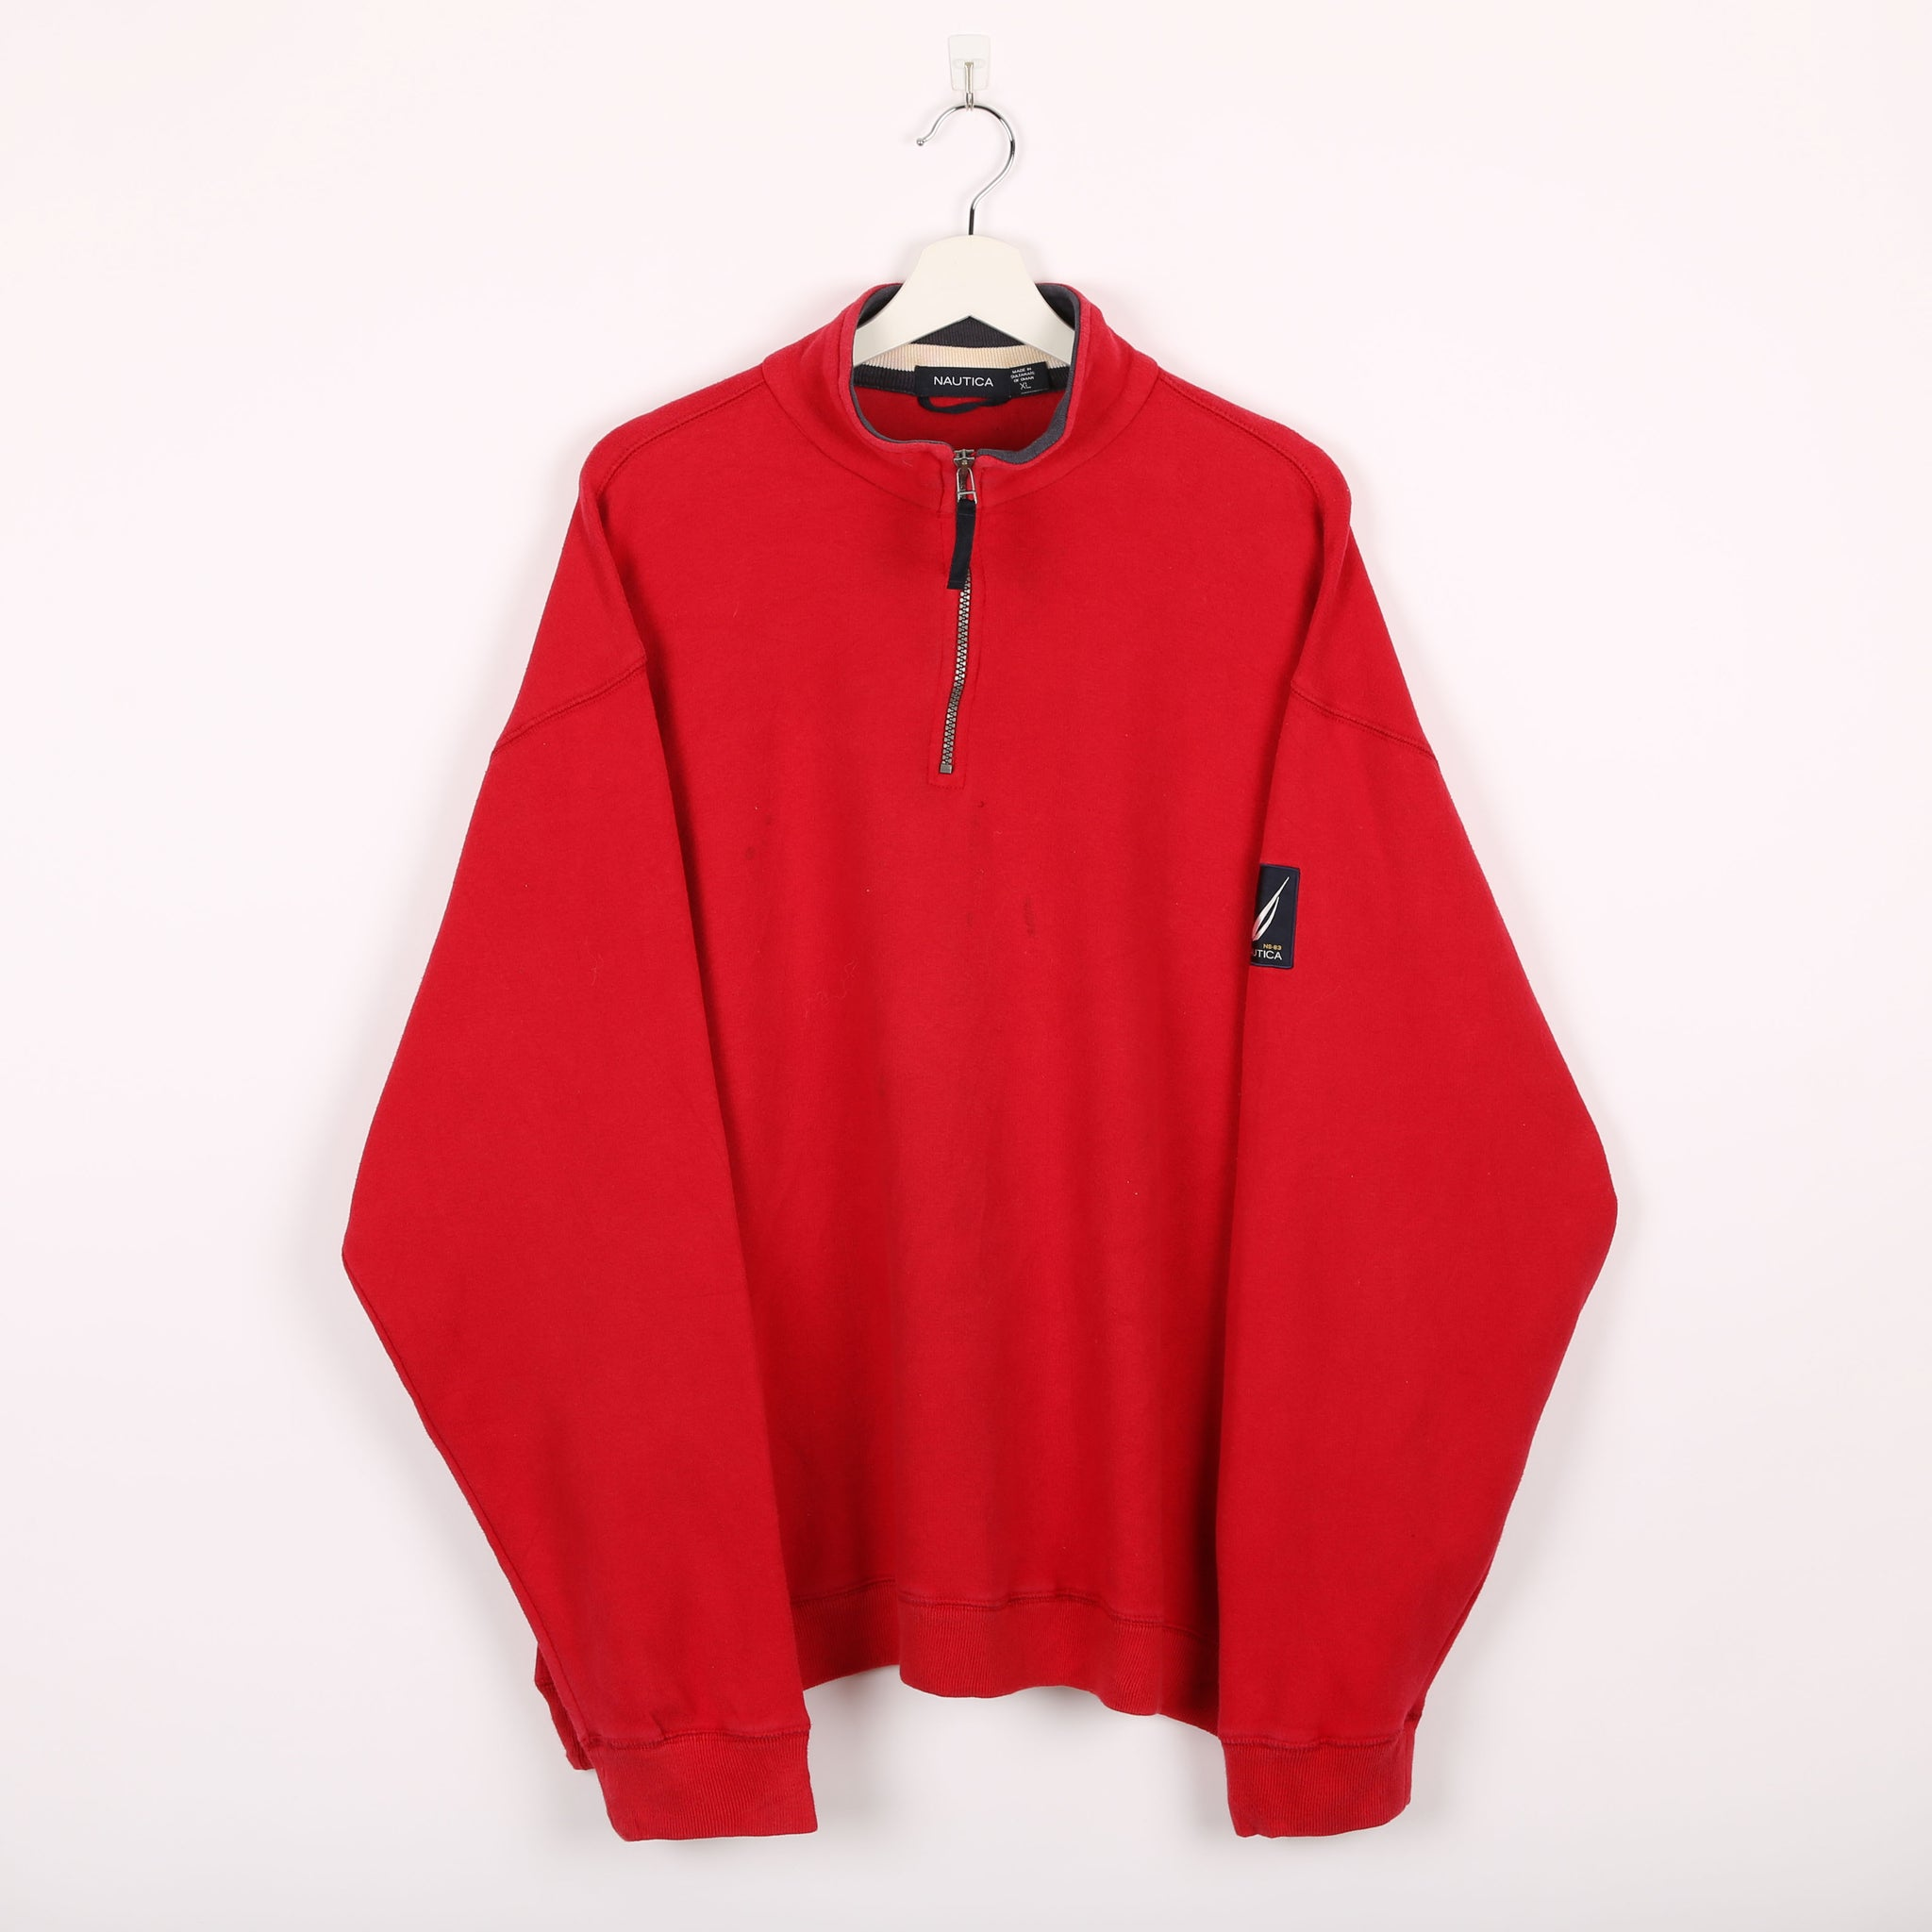 Nautica 1/4 Zip Sweatshirt Red XLarge